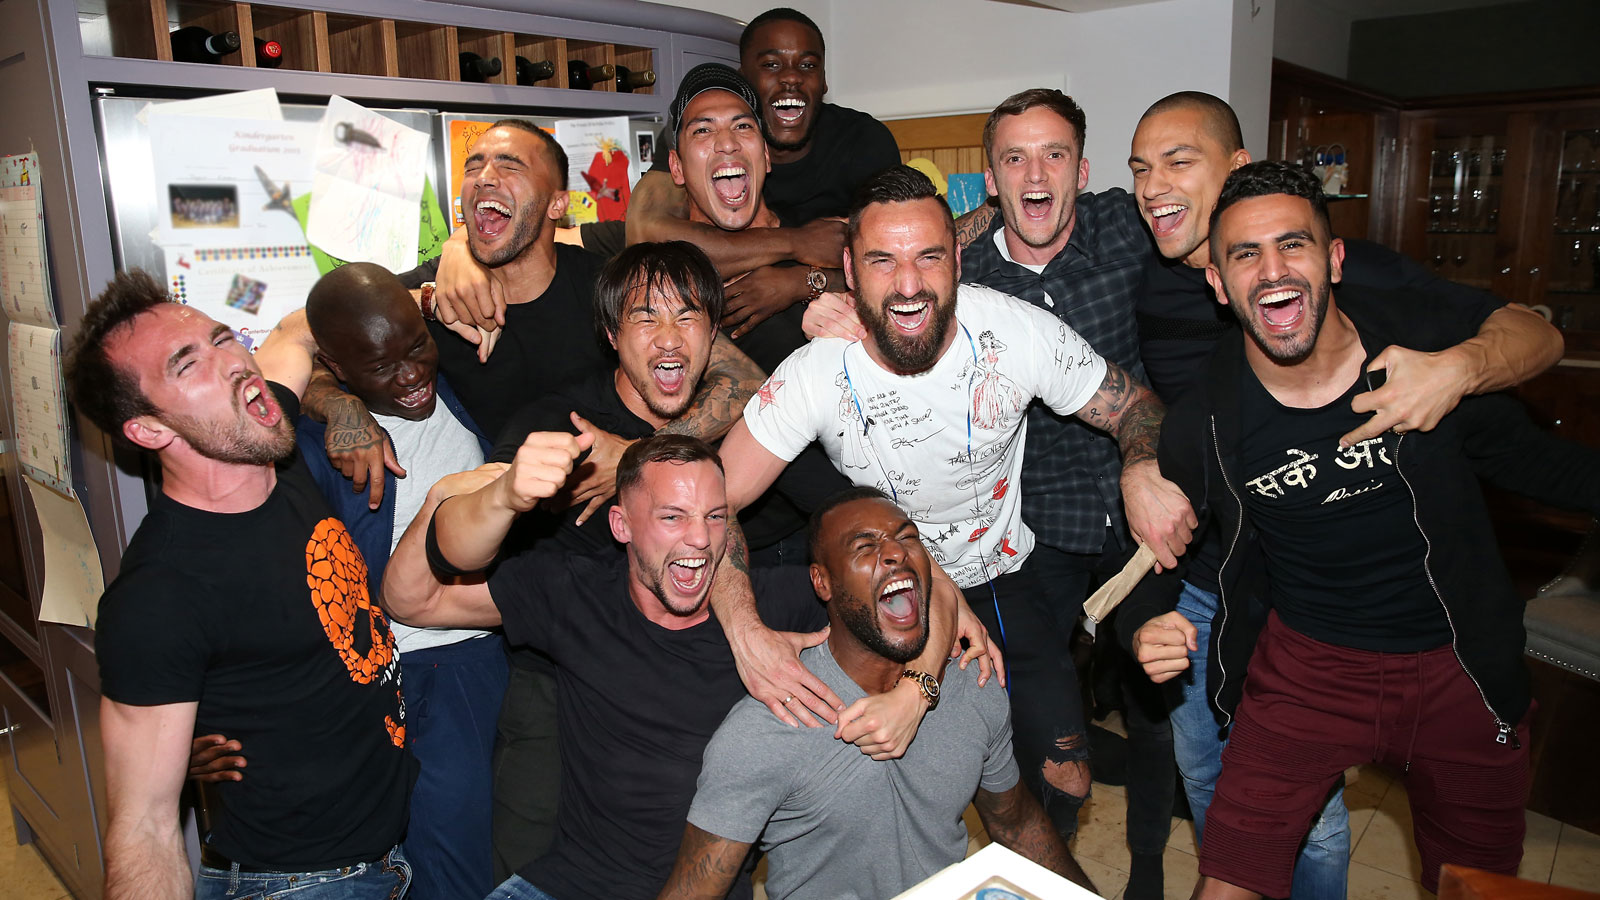 Leicester players gathered at Jamie Vardy's house to watch Chelsea take on Tottenham in the decisive match in the title race. It was the Vardy Party to top all Vardy Parties, as Leicester was crowned champion following the 2-2 draw at Stamford Bridge.